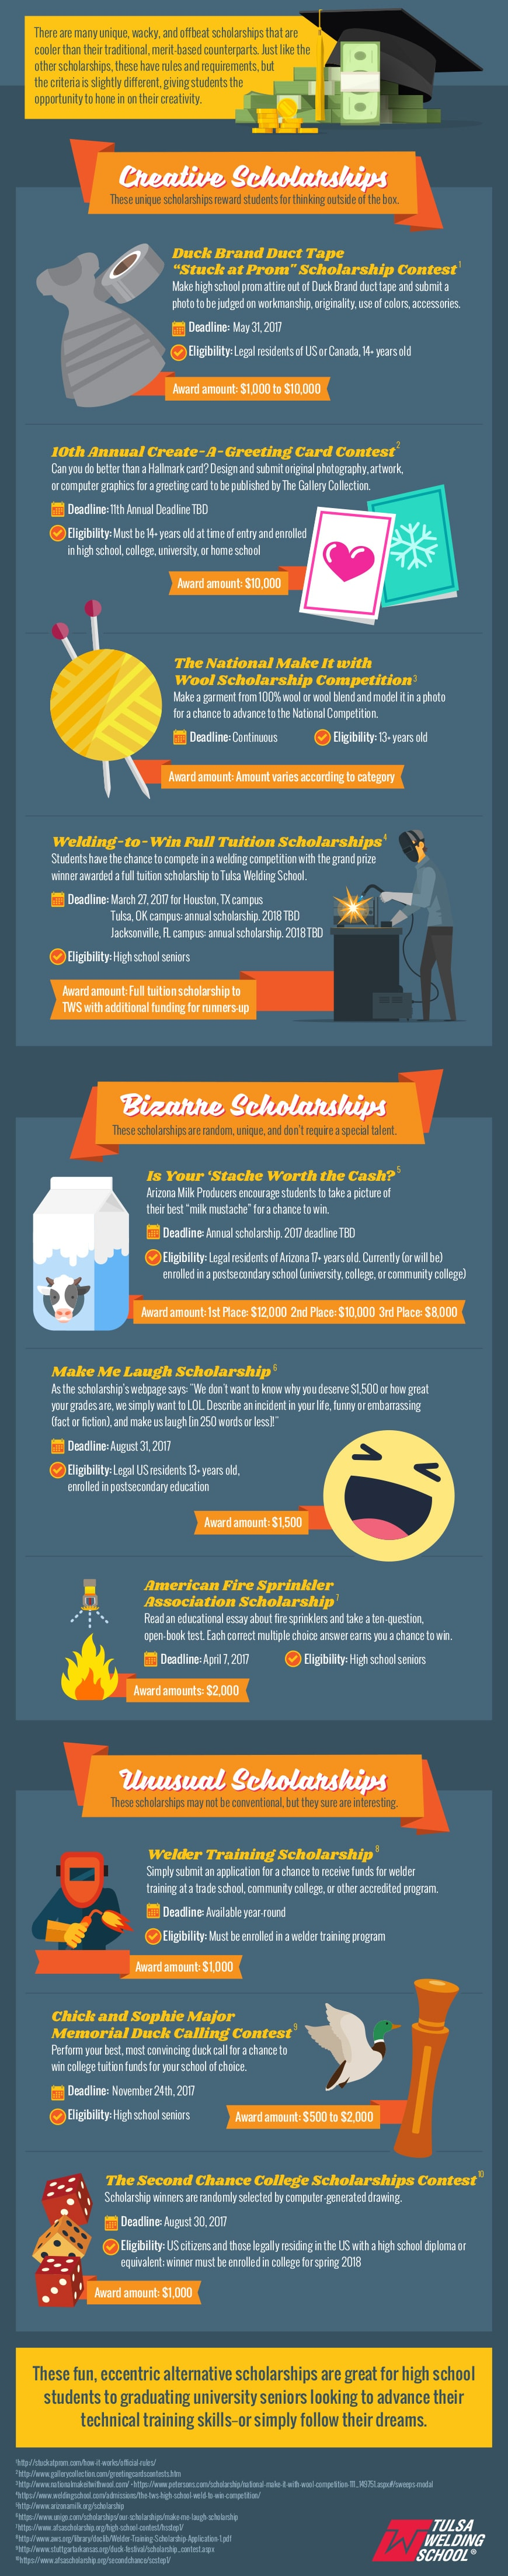 Science Fiction Essay Bizarre Creative Unusual Scholarships Proposal Essay Topics Examples also Help Students With Writing Bizarre Creative And Unusual Scholarships  Tulsa Welding School Essays On Science And Technology